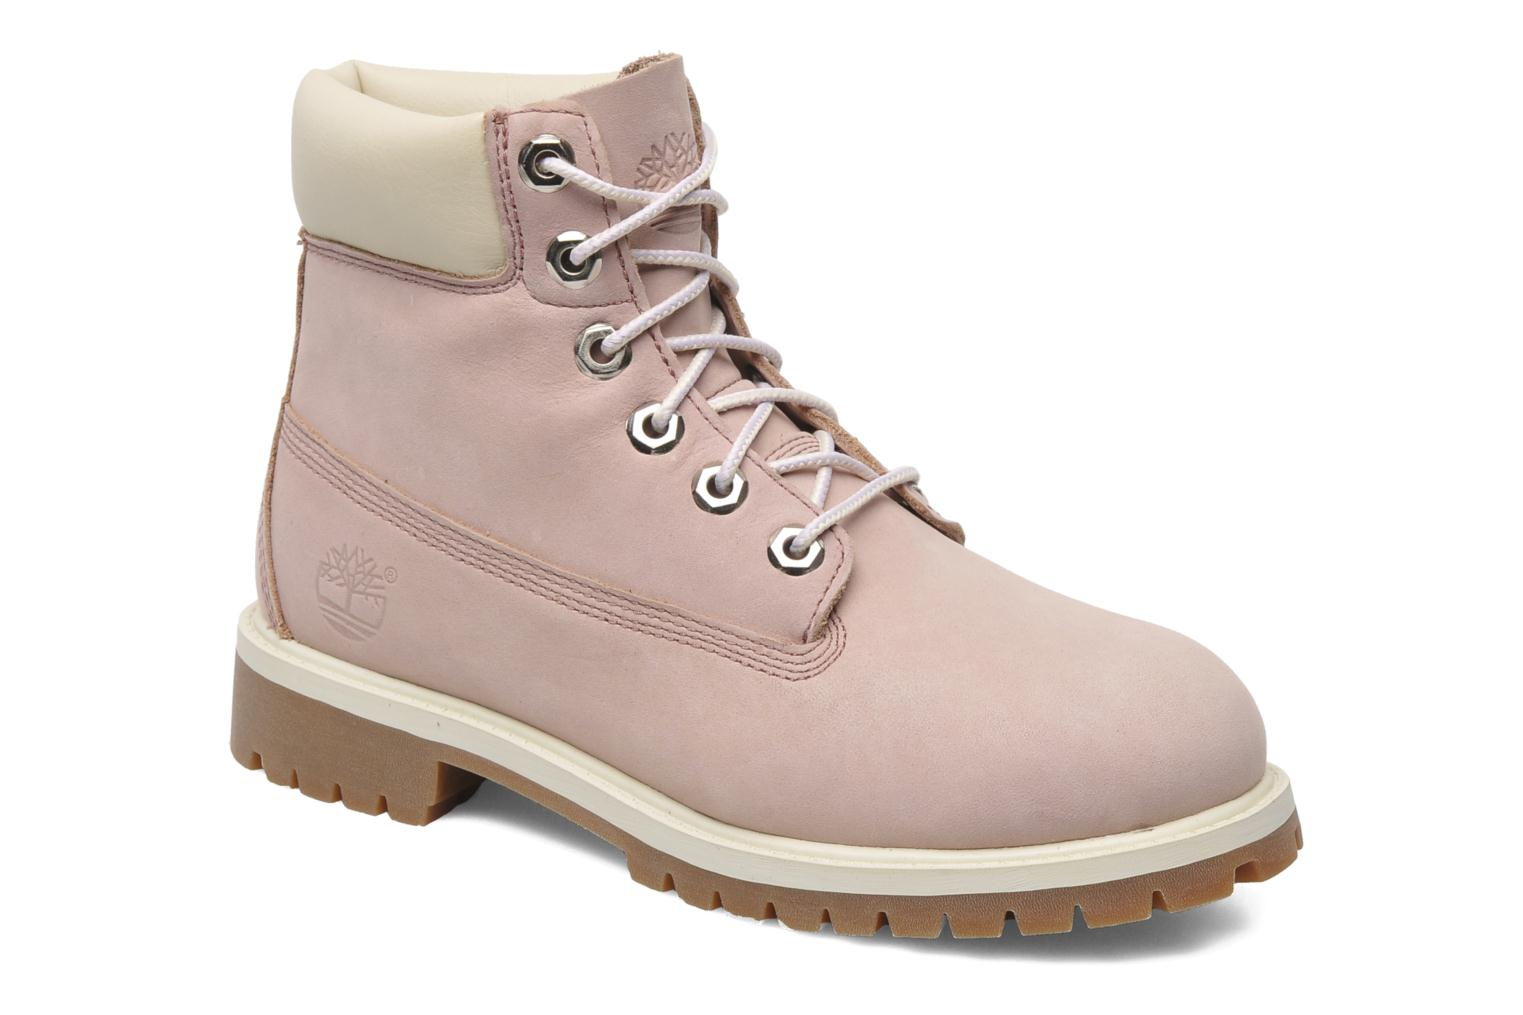 6 In Premium WP Boot Lavendar Nubuck